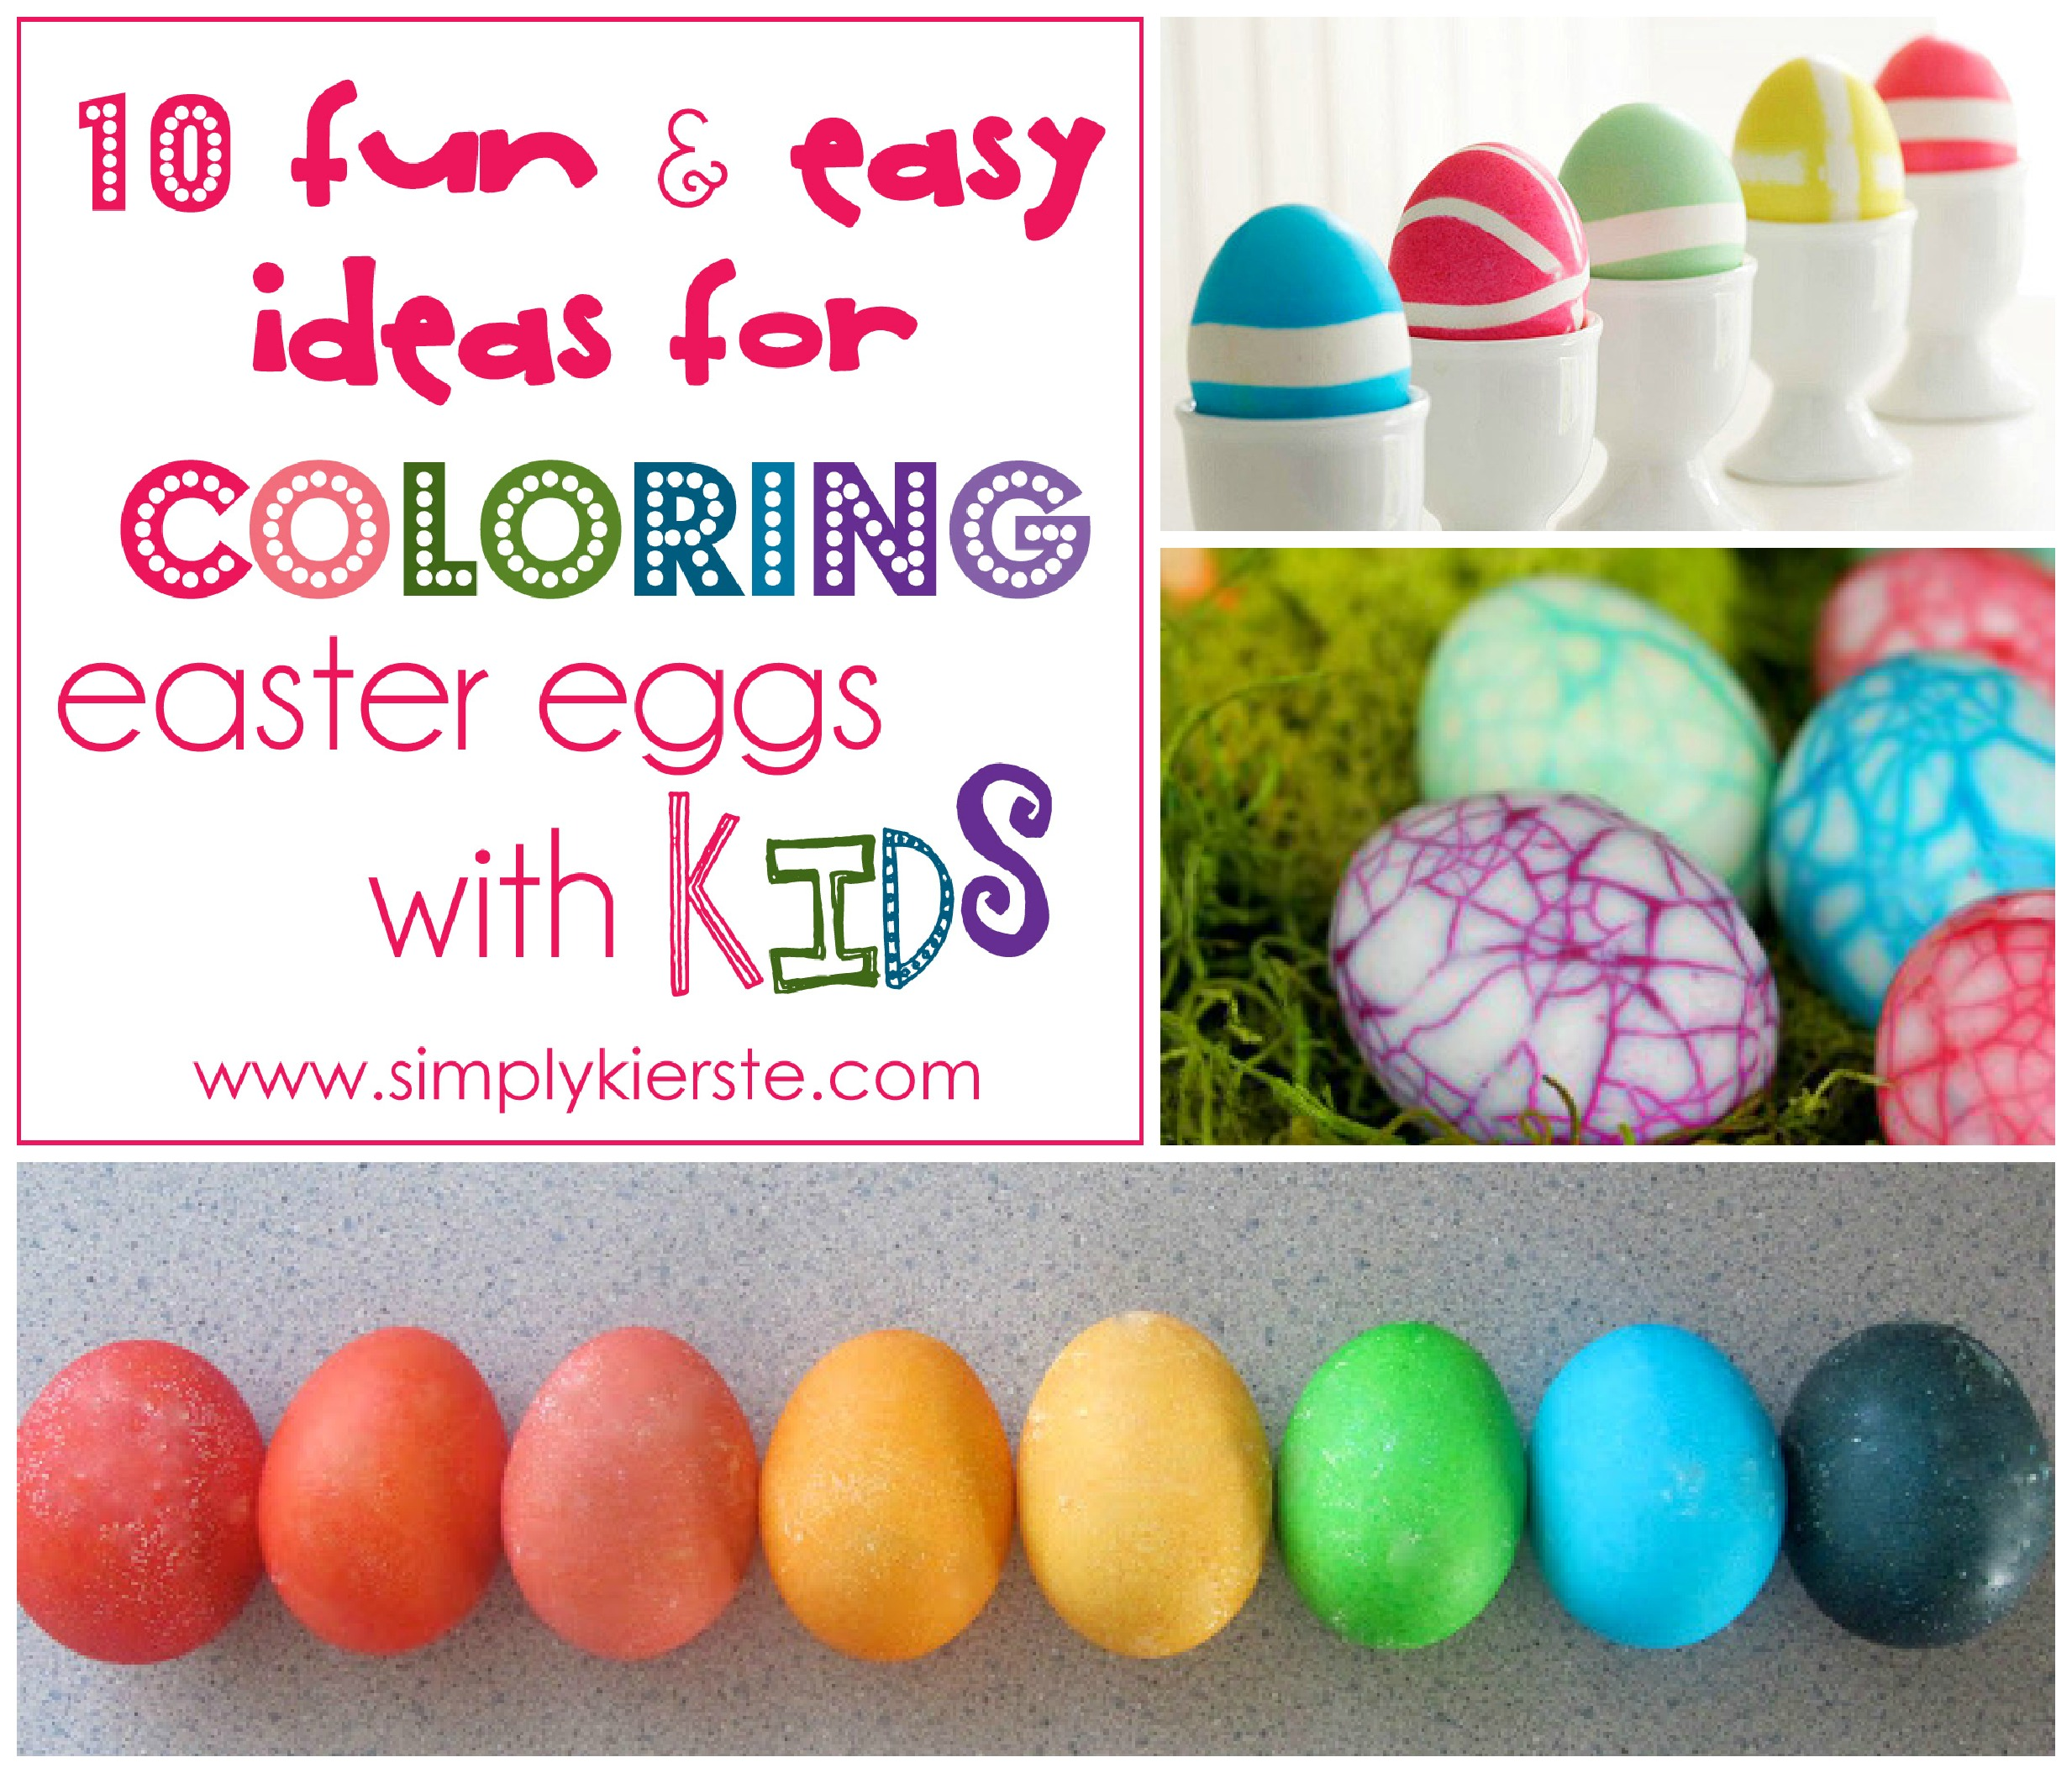 10 Fun Easy Ideas For Decorating Easter Eggs With Kids